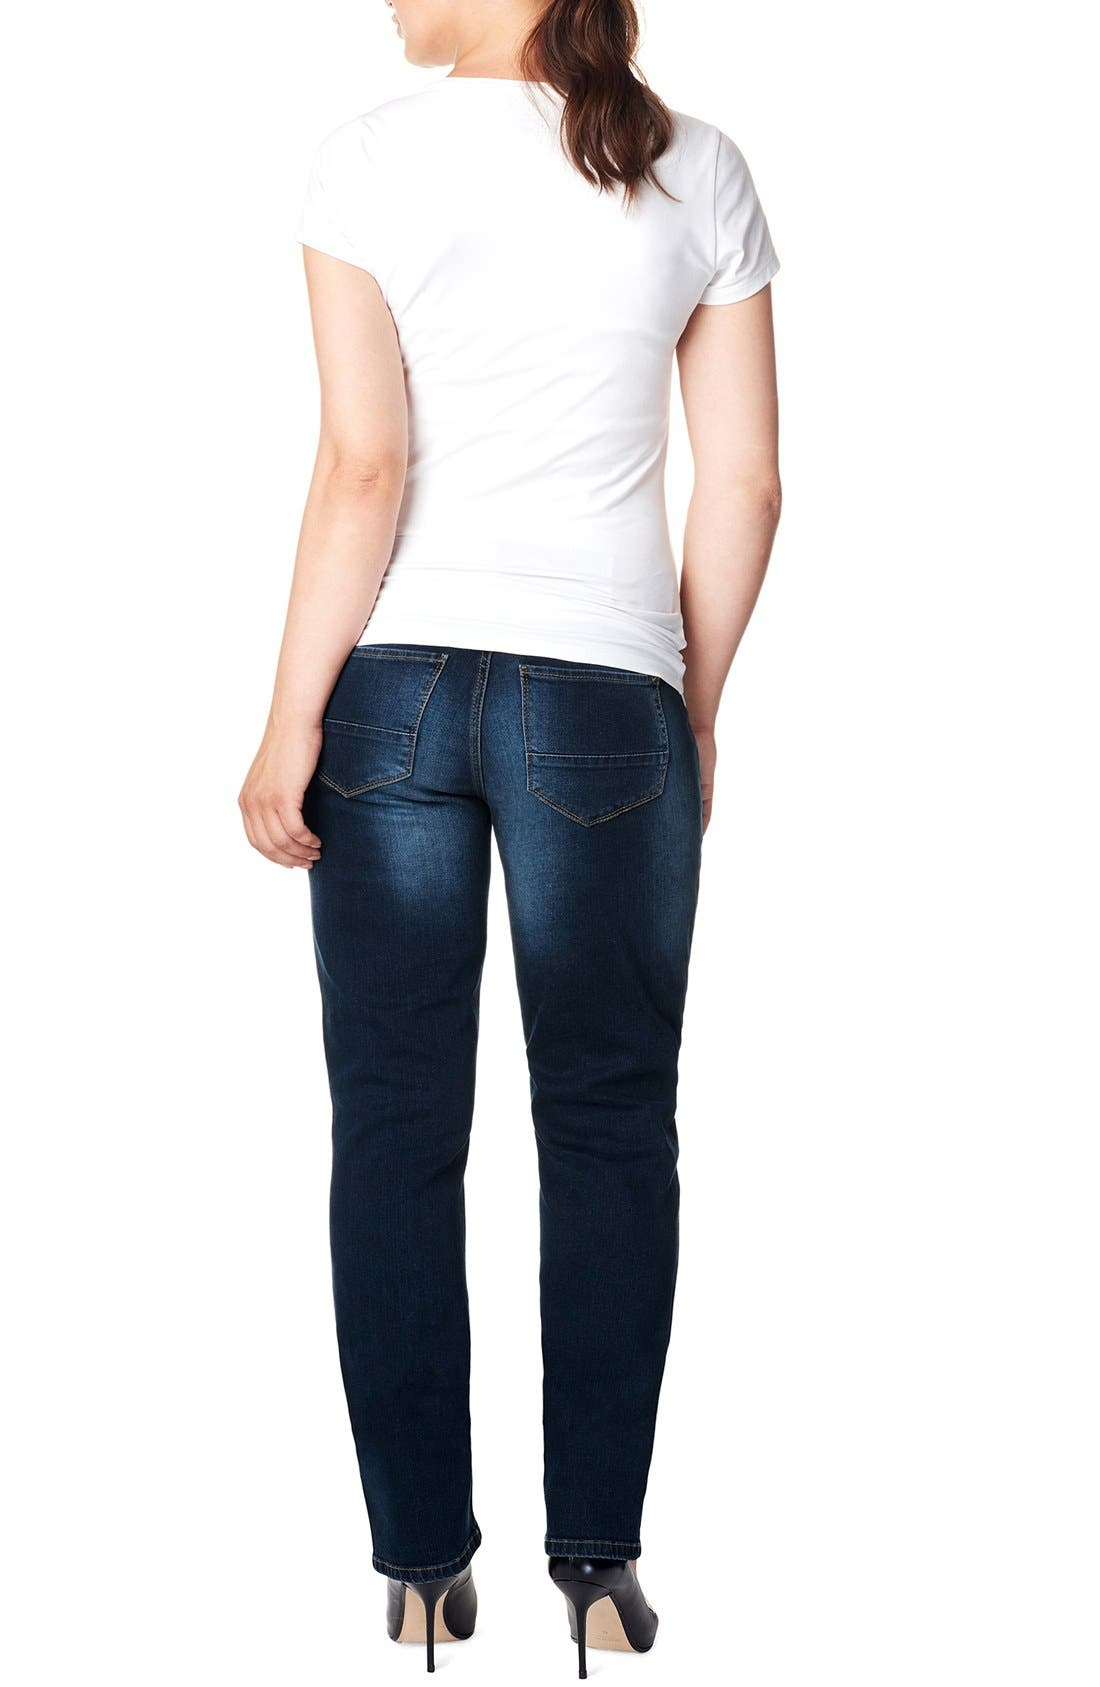 'Mena Comfort' Over the Belly Straight Leg Maternity Jeans,                             Alternate thumbnail 2, color,                             DARK STONE WASH